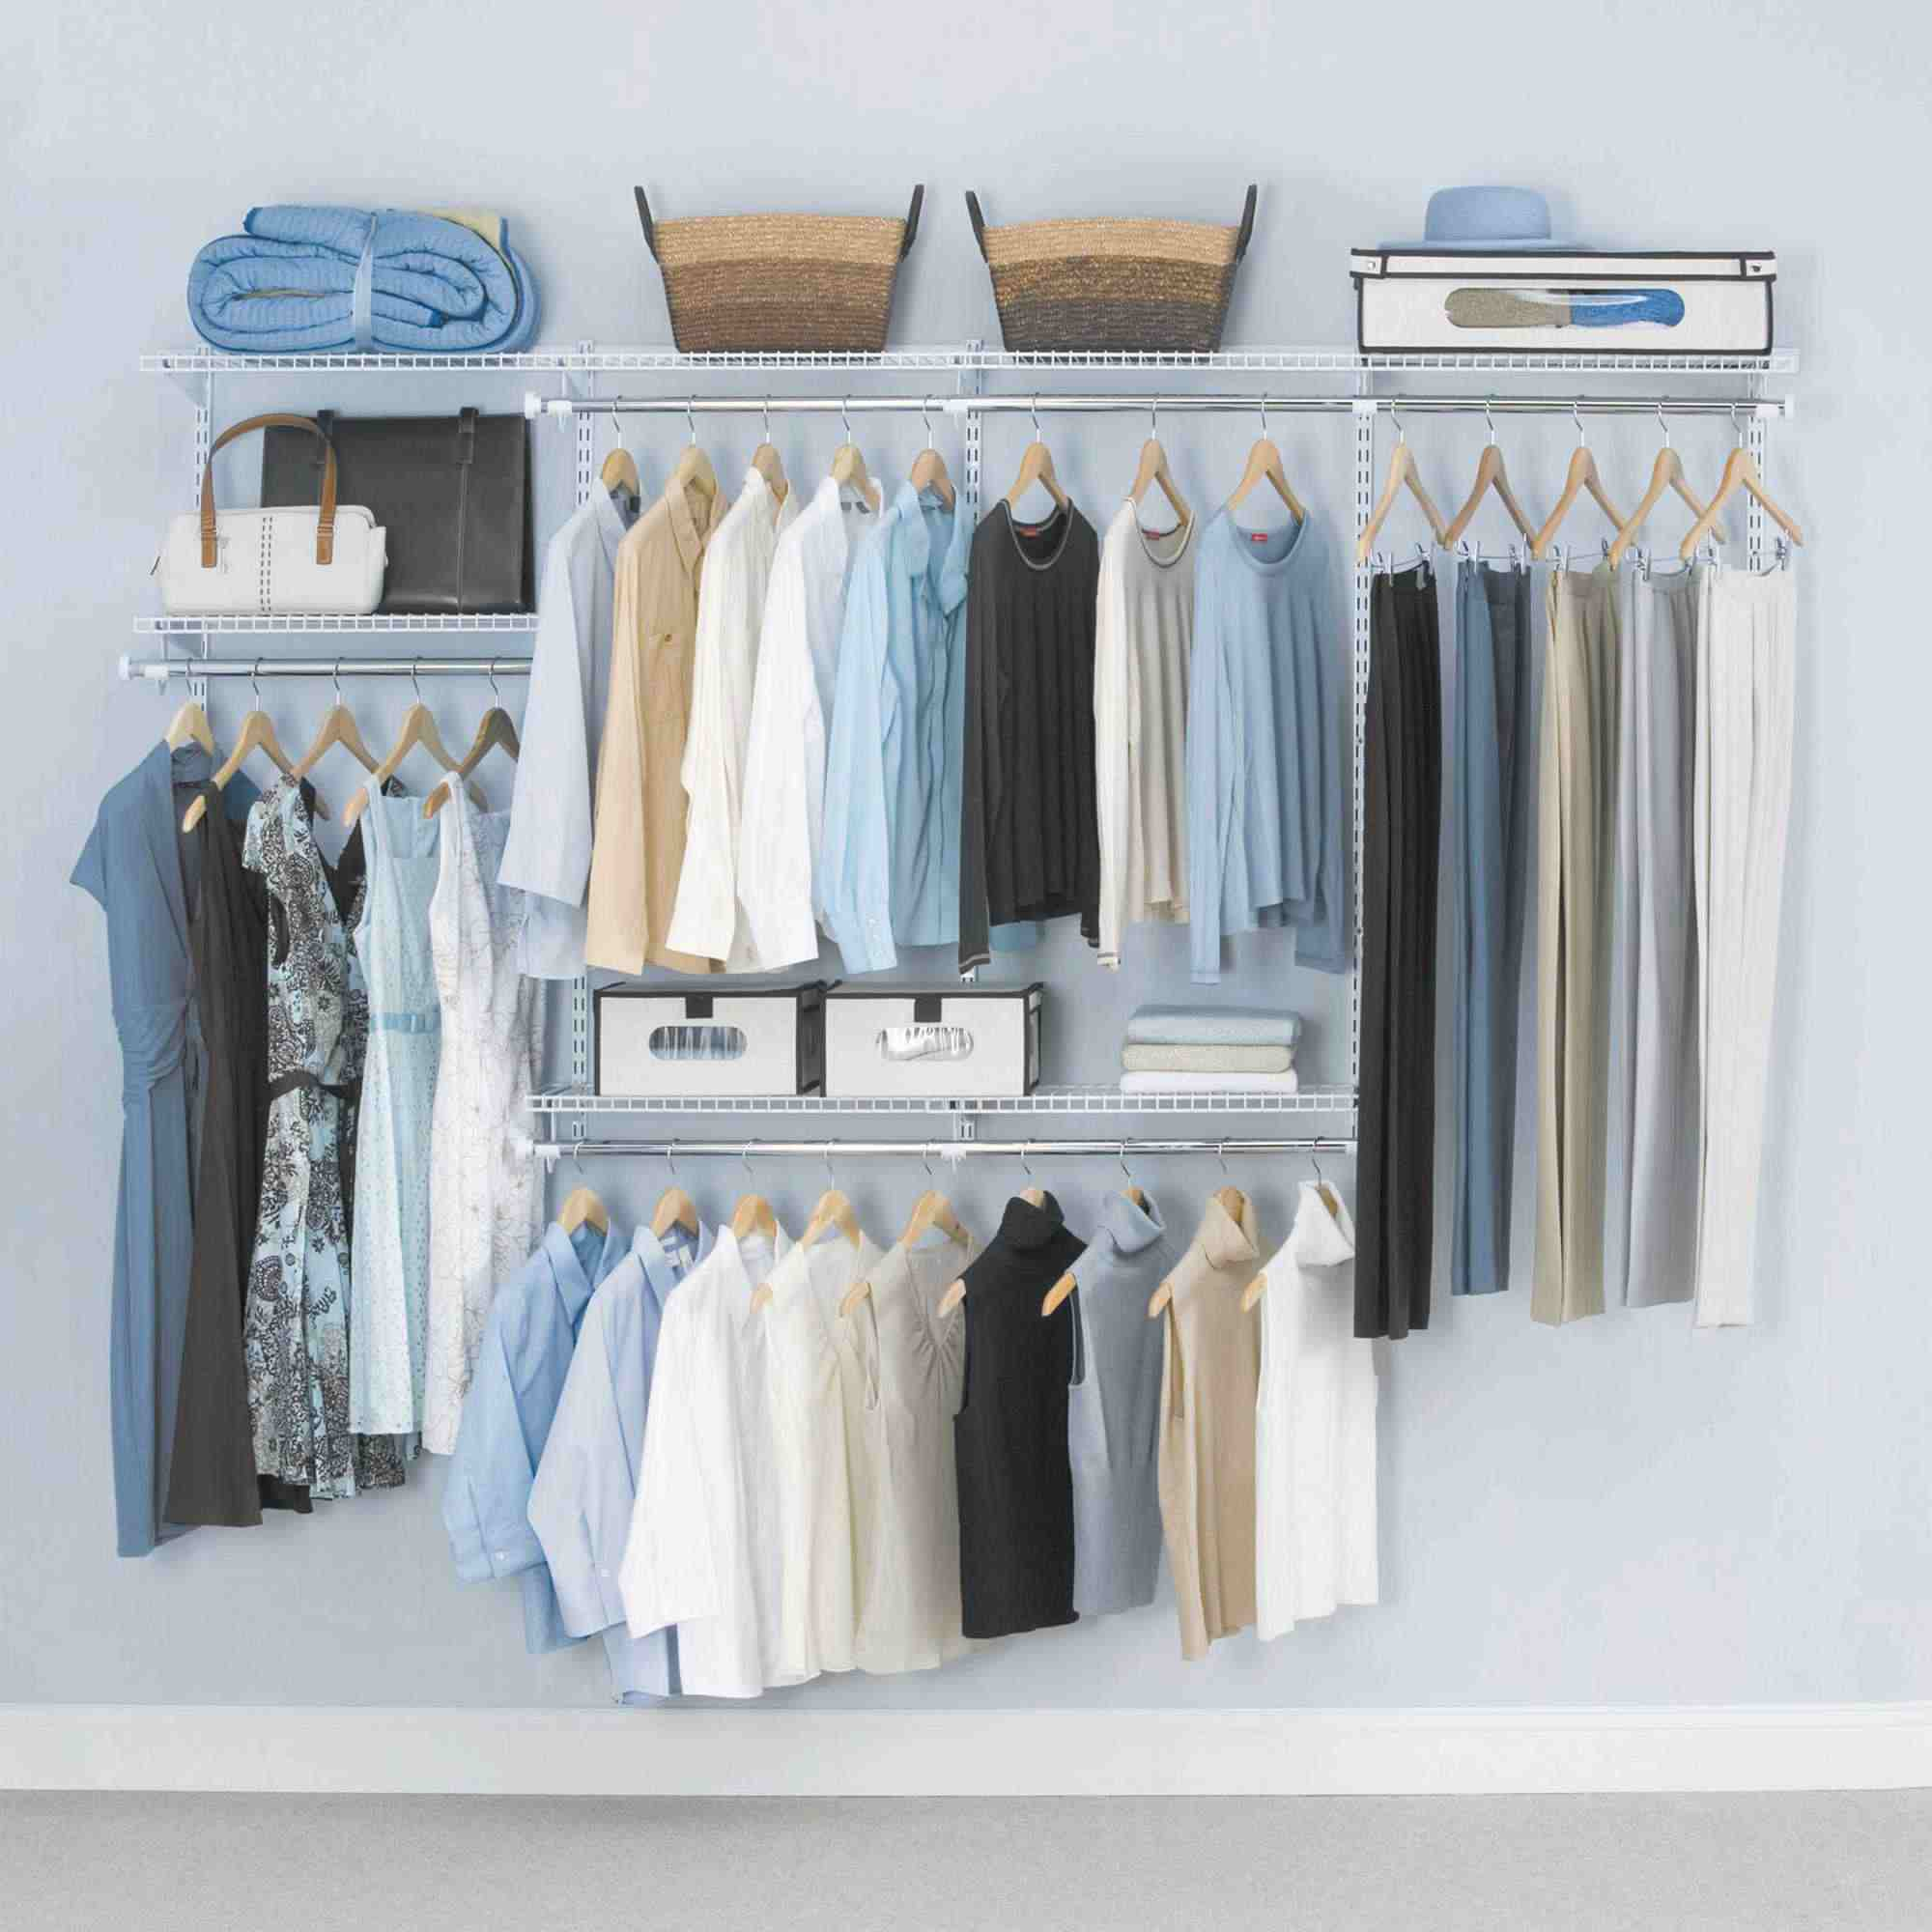 stock storage choosing video woman closet clothes videoblocks fashion wardrobe footage hangers y p